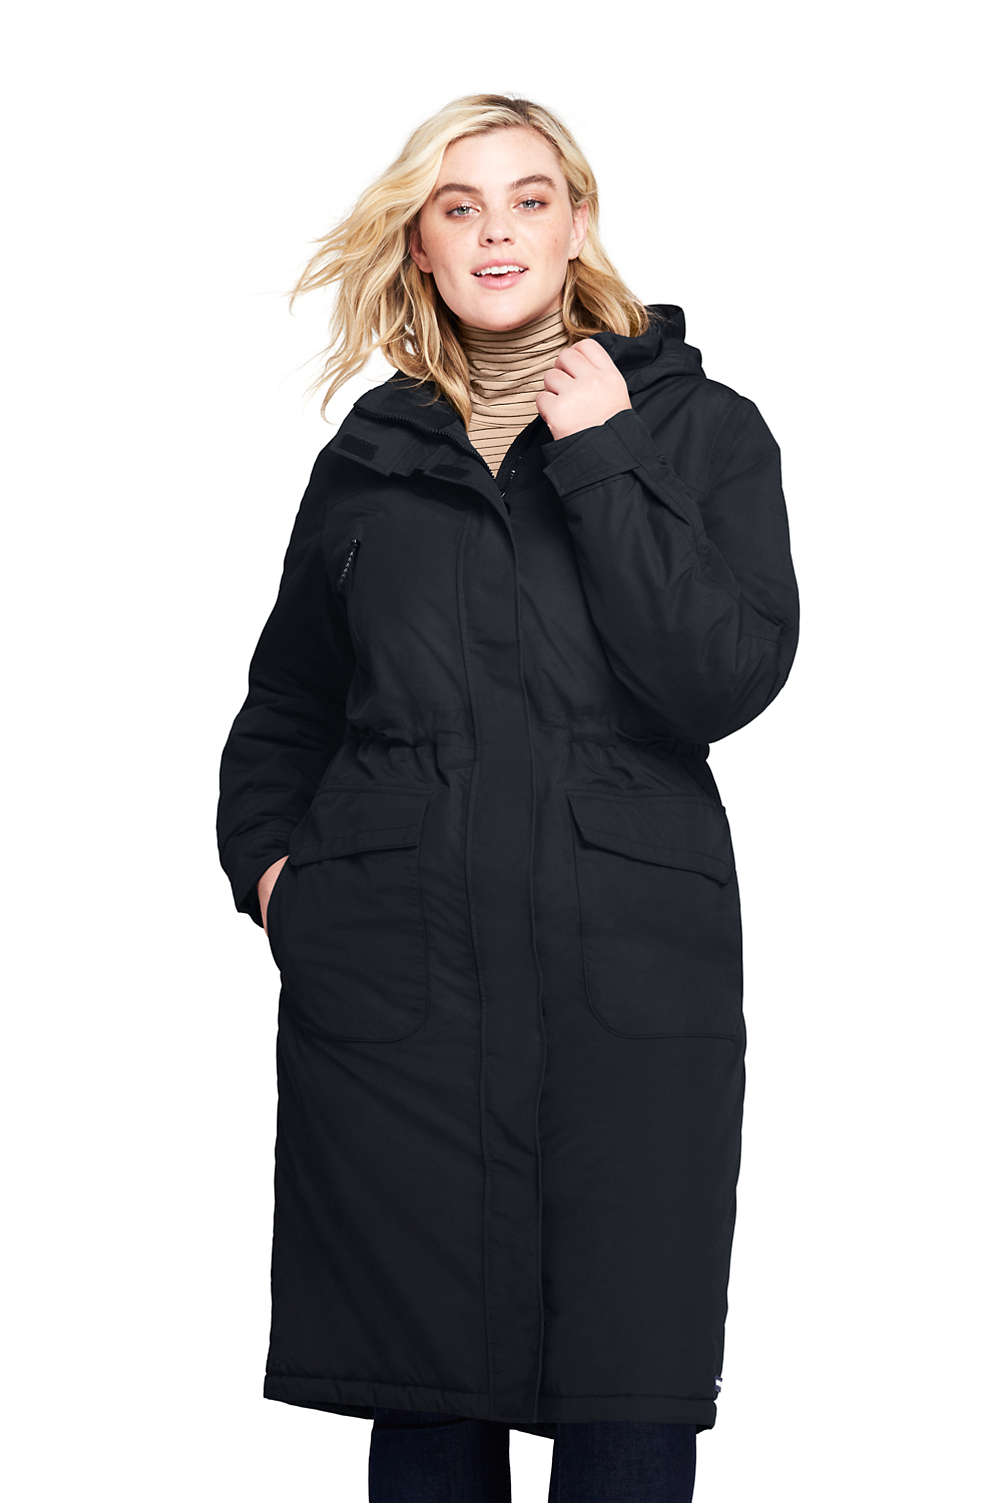 c207c2213 Women's Plus Size Squall Insulated Long Stadium Coat from Lands' End